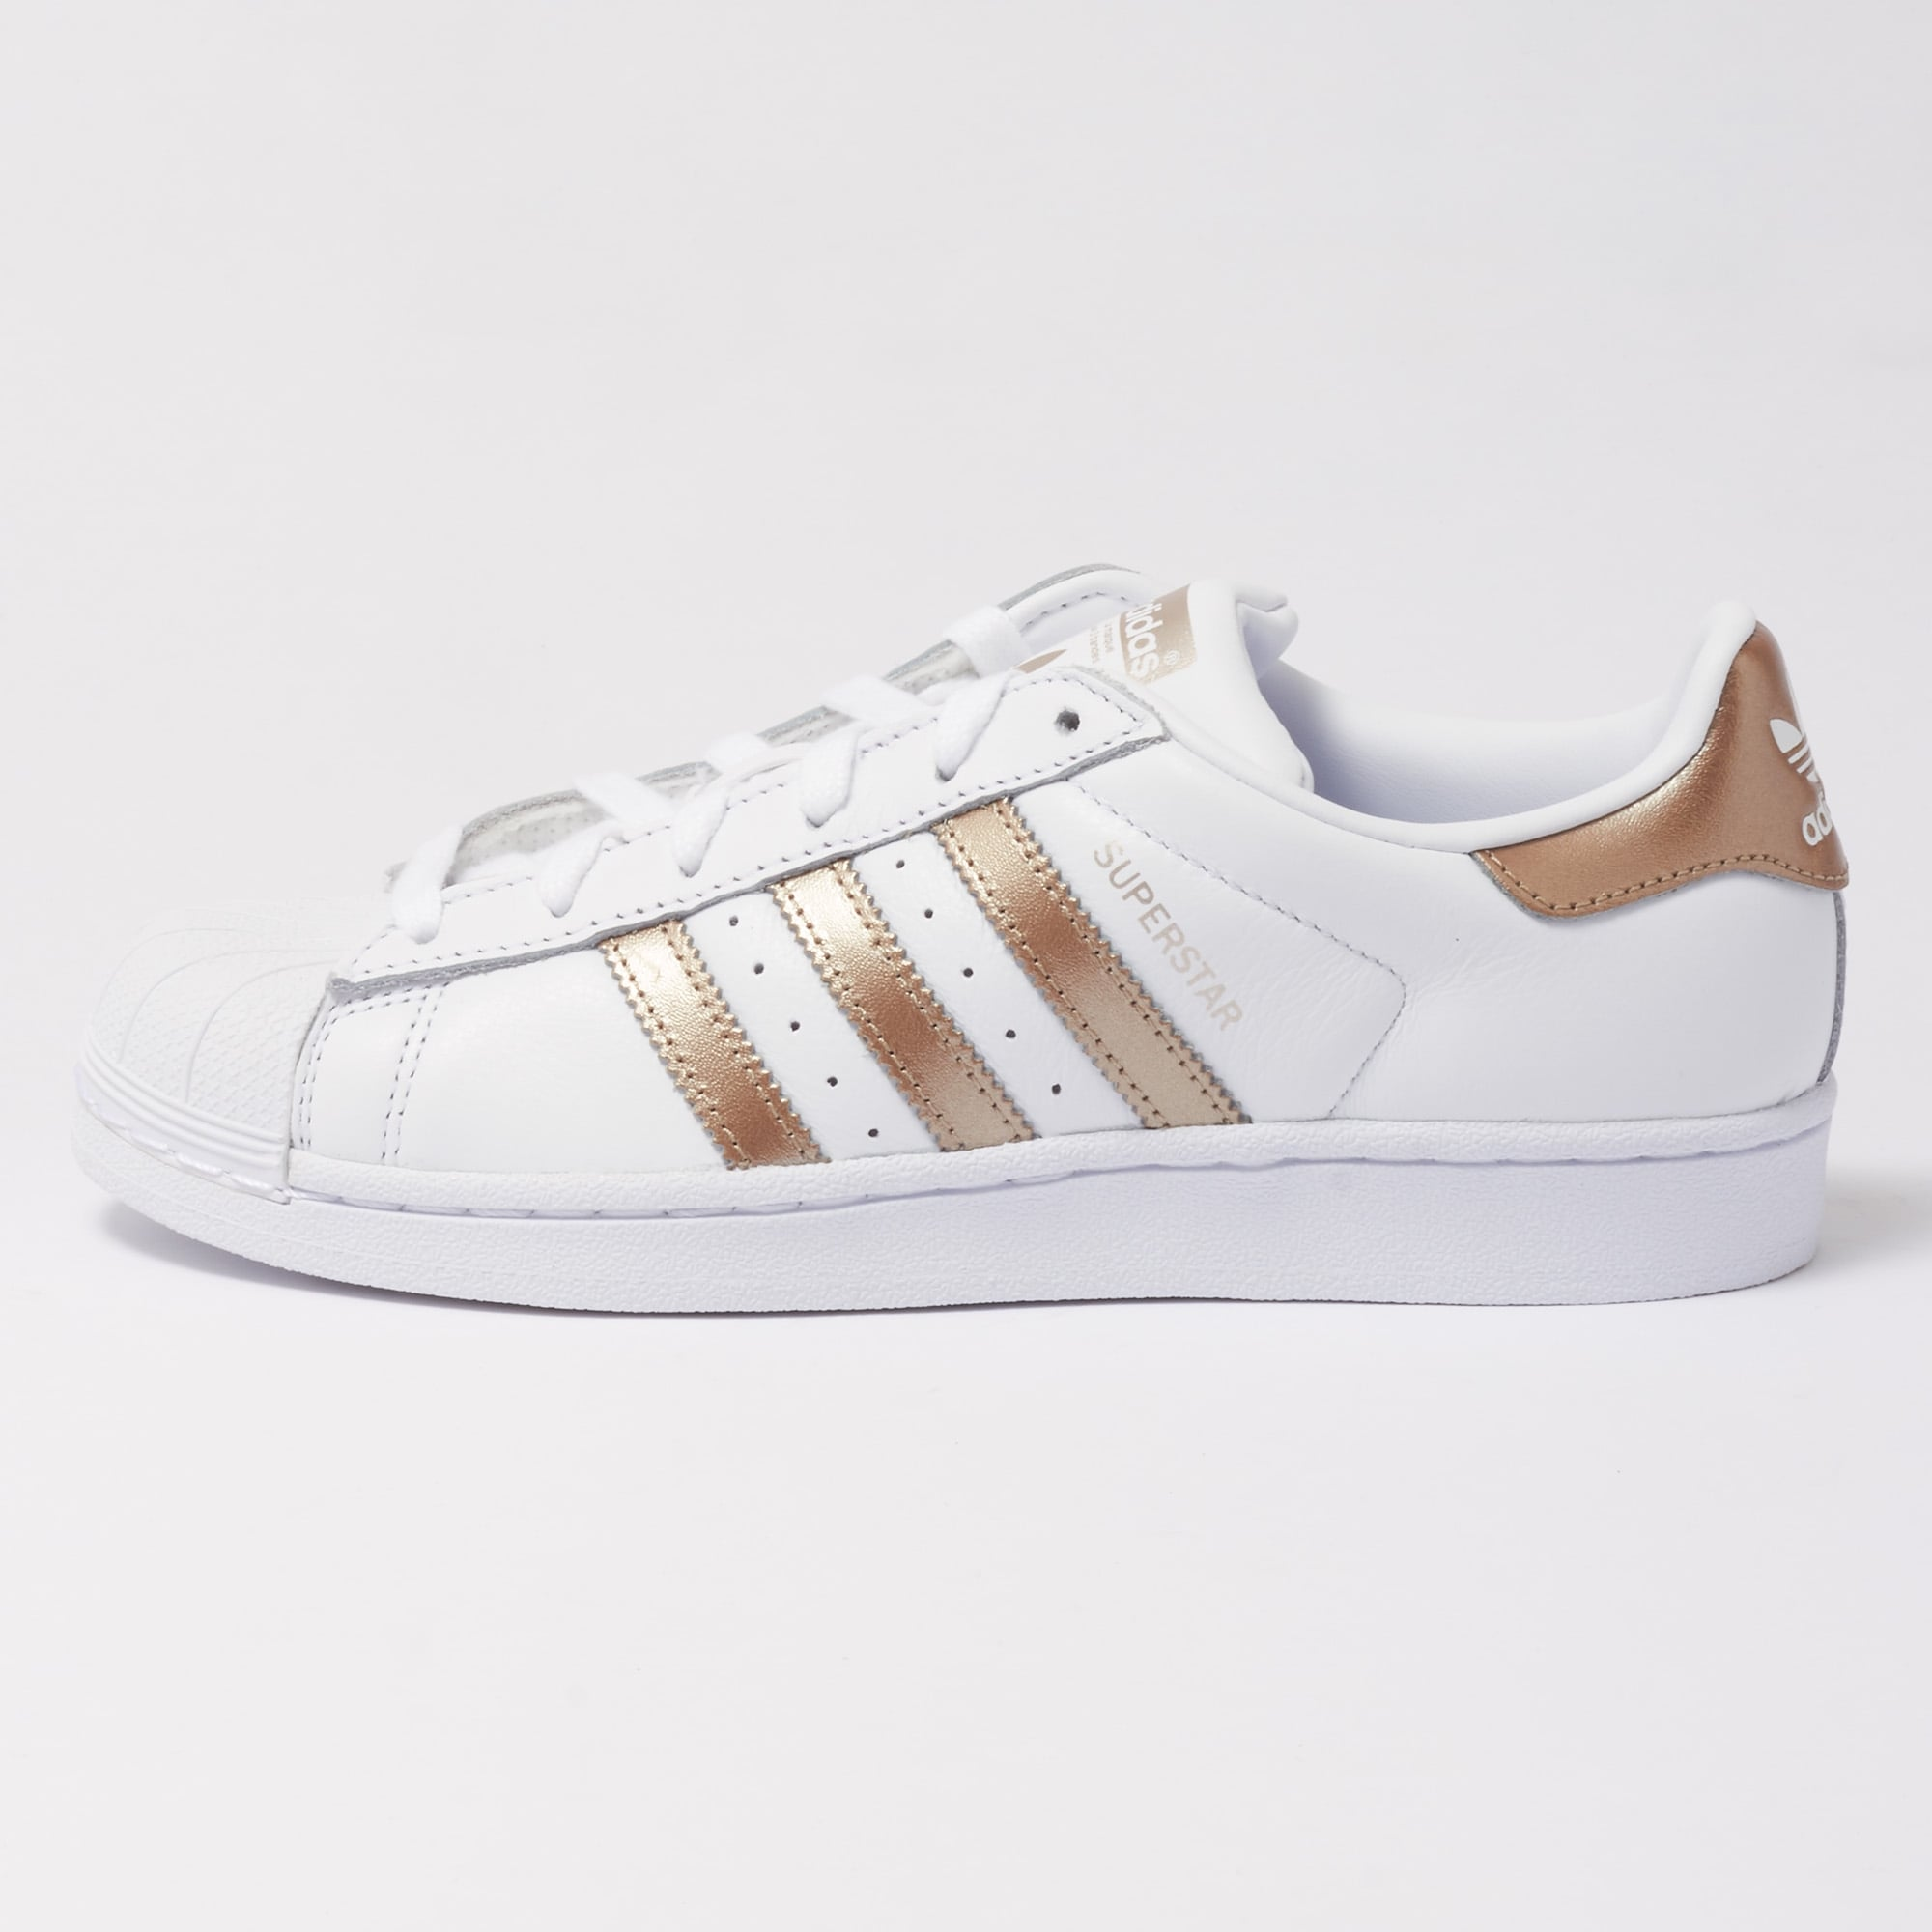 adidas Originals SUPERSTAR - Trainers - footwear white/cyber metallic 4zR5vxtDy